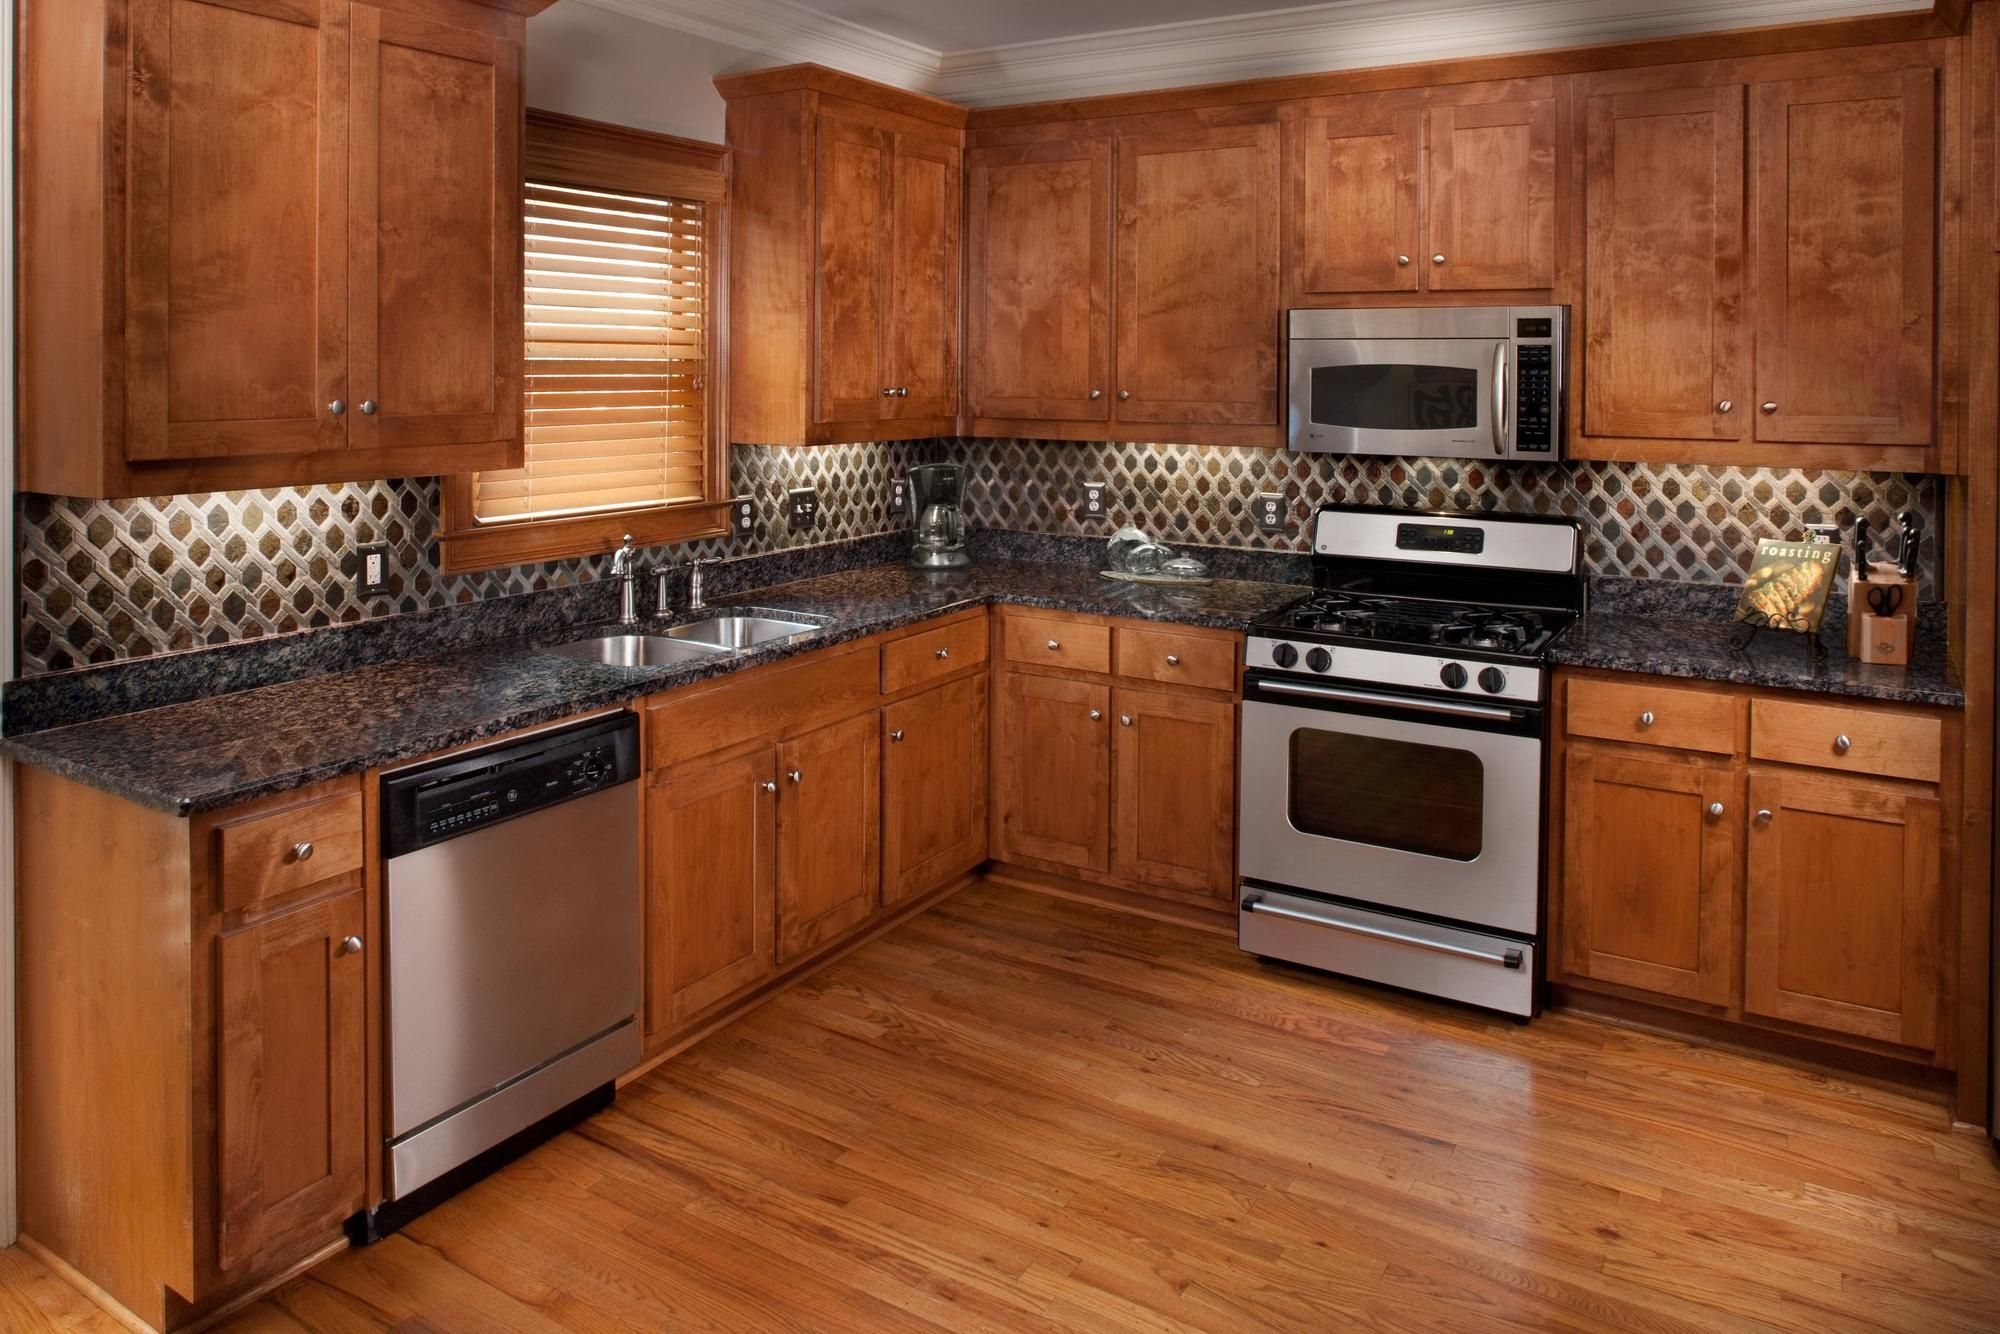 Mixed Diamond Decorative Slate Mosaic Floor Decor In 2021 Cherry Wood Kitchens Brown Cupboards